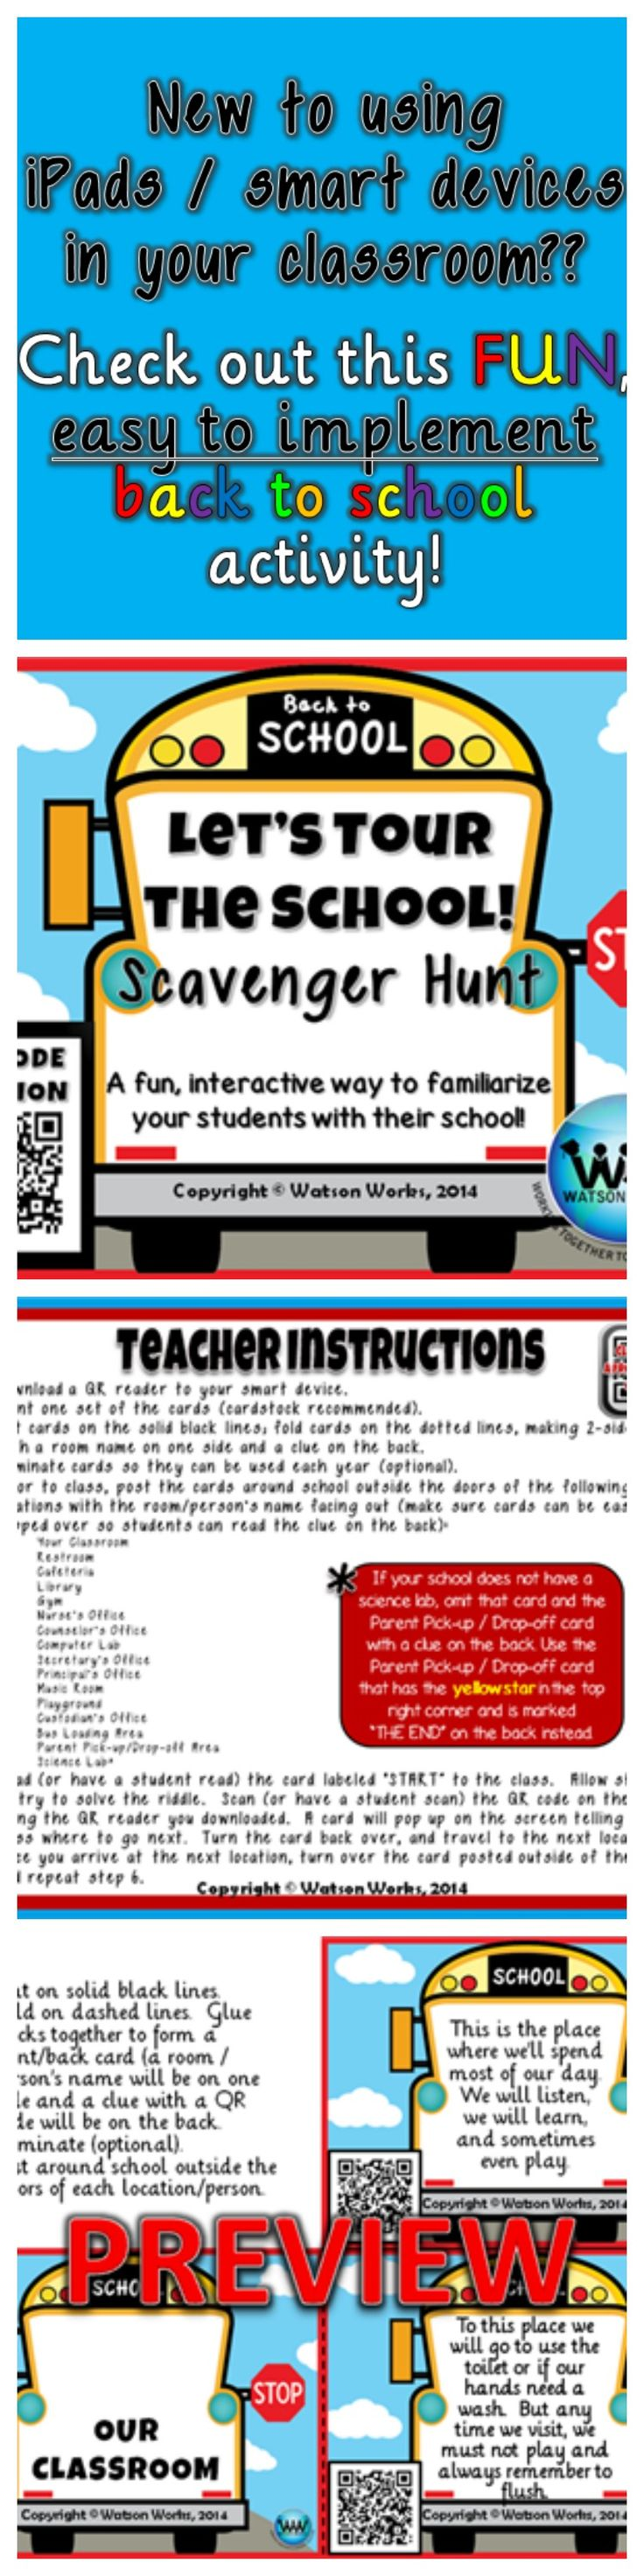 ONLY $2.70 (reg. $3)!  If your school has purchased iPads/smart devices and you are a little leery of using them, QR code activities are one of the easiest ways to implement these devices in your classroom.  In this back to school scavenger hunt, you will familiarize your students with important people and places in their school in a fun, interactive way. (reg. $3) July-Aug.